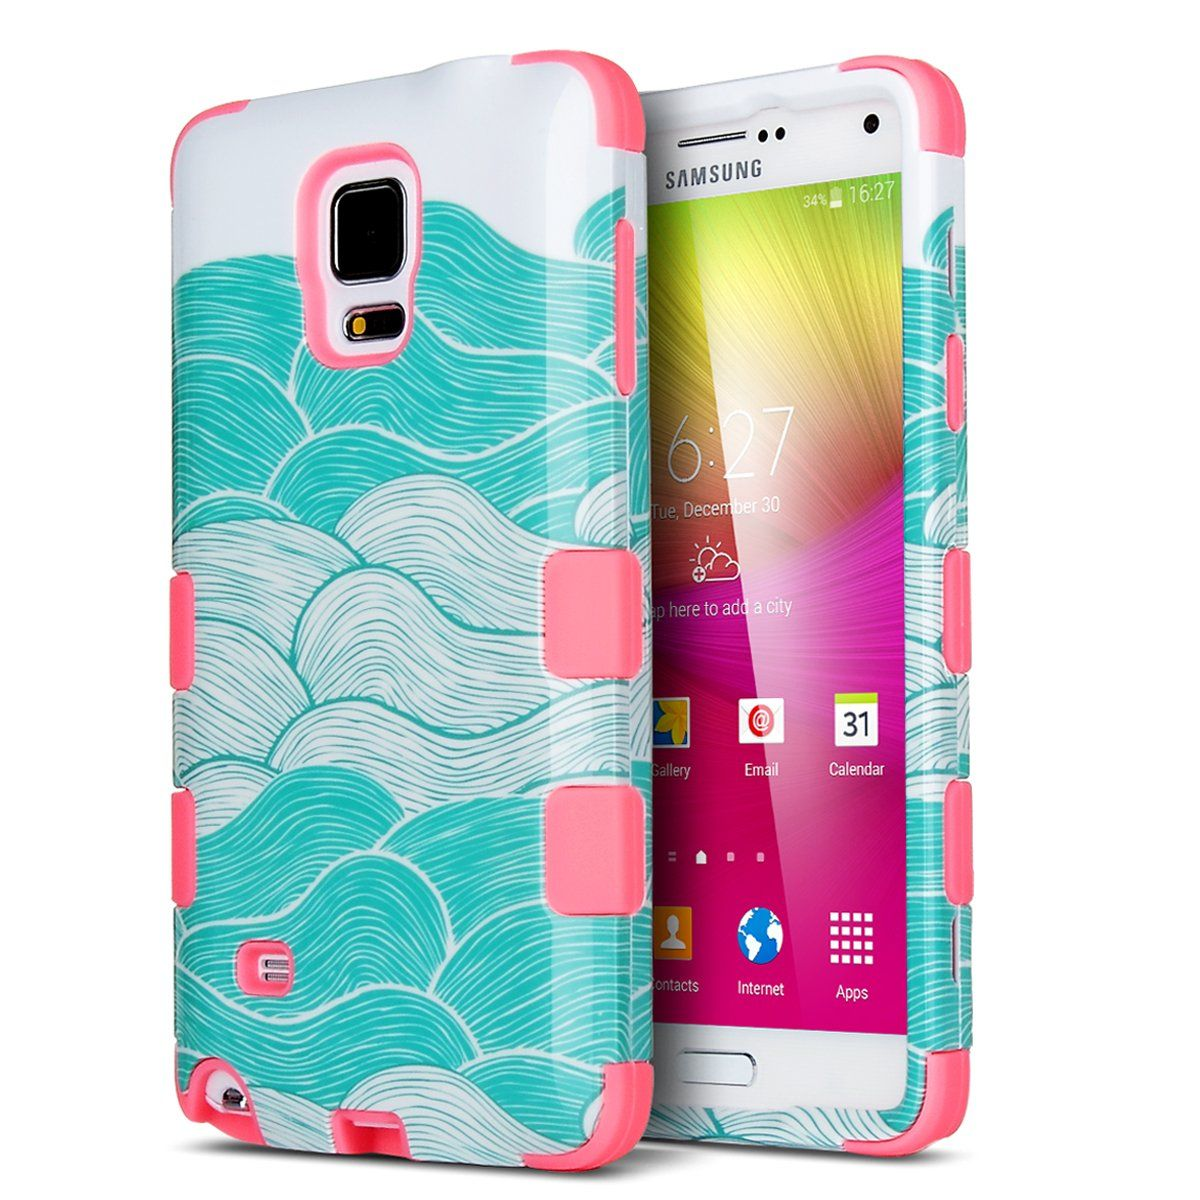 AmazonSmile: Note 4 Case,Galaxy Note 4 Case,ULAK Note 4 Hybrid Case (plastic+Slicone) Protective Case for Samsung Galaxy Note 4 with Shock Absorbing and Scratch Resistant Perfect 3 in 1 Starry Night Wave Water Red Slicone: Cell Phones & Accessories